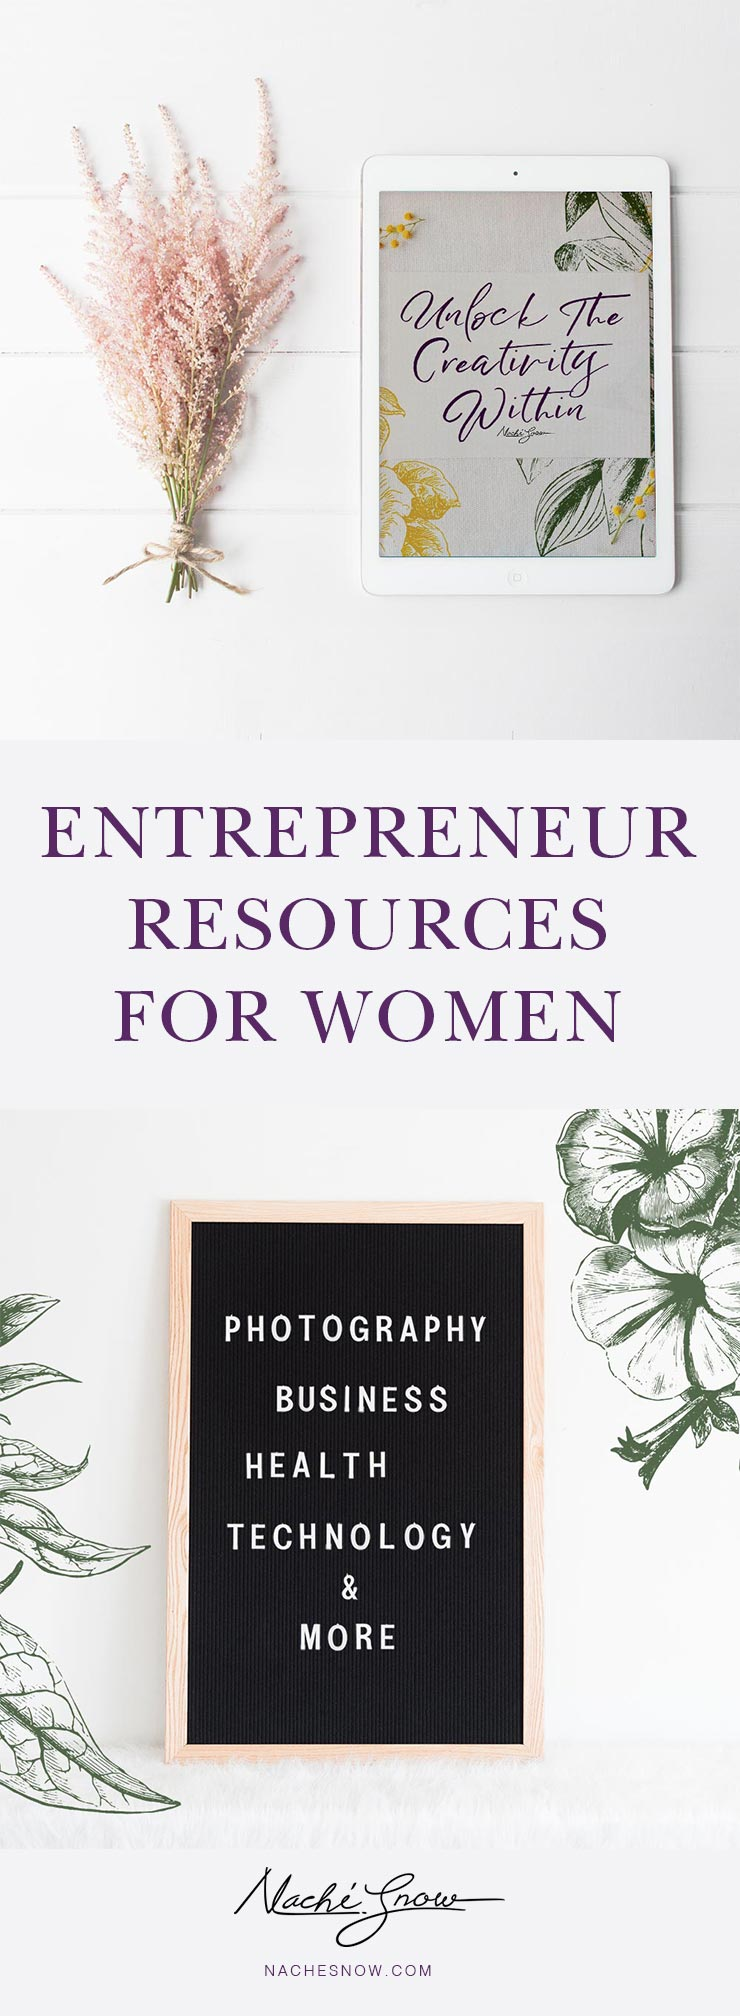 Nache Snow | Entrepreneur Resources for Women + Studio 78 Podcast | nachesnow.com